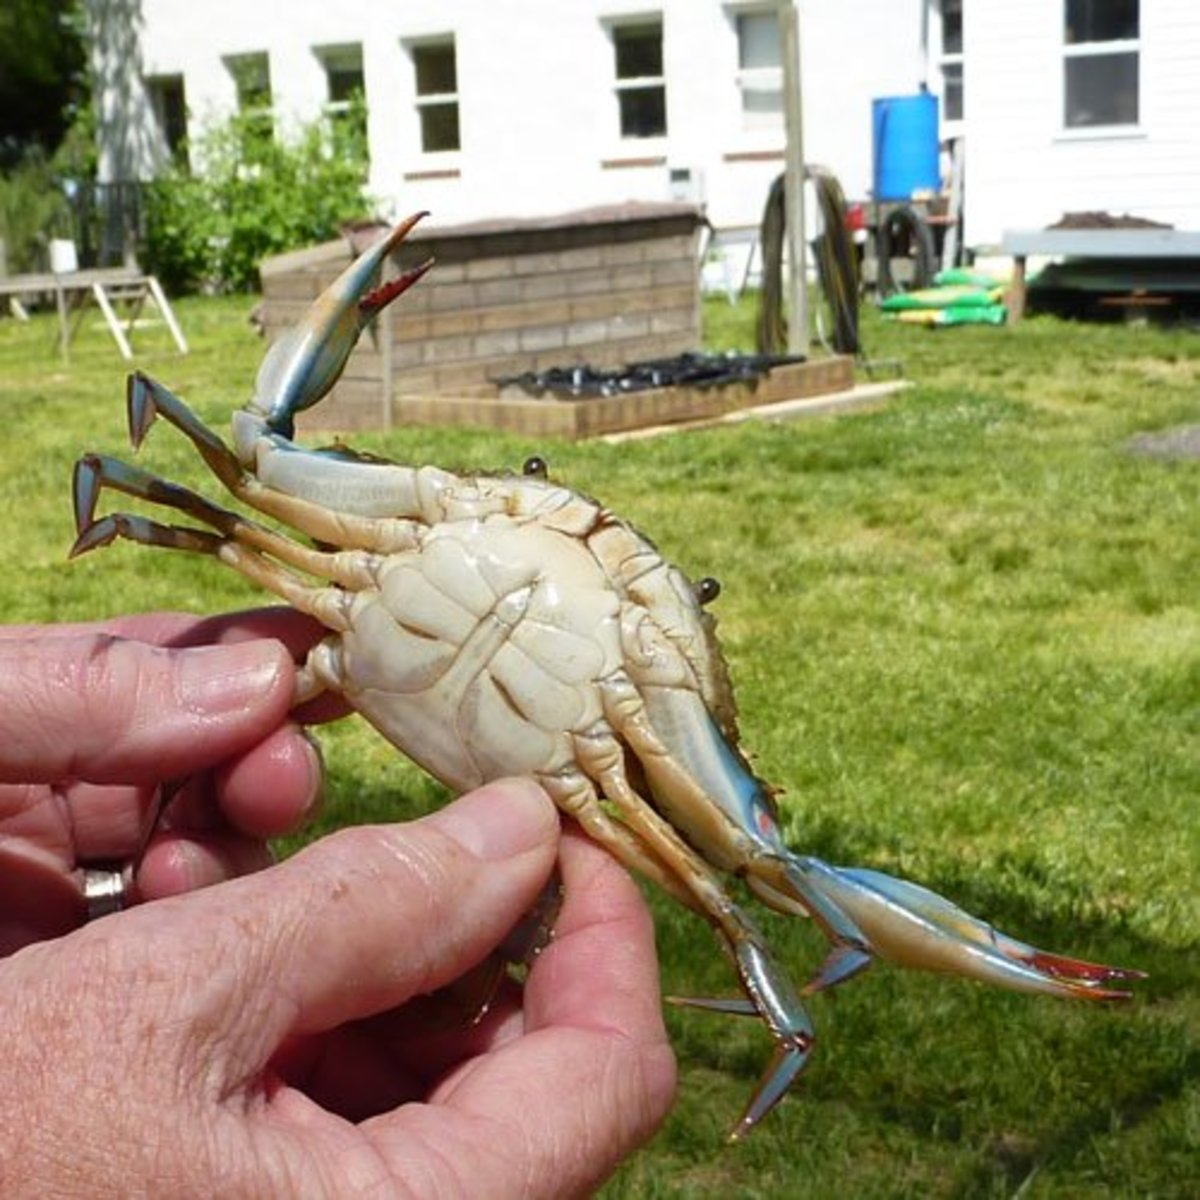 The pointed underside identifies this crab as a male. Females have a rounded, dome shaped on their underside.